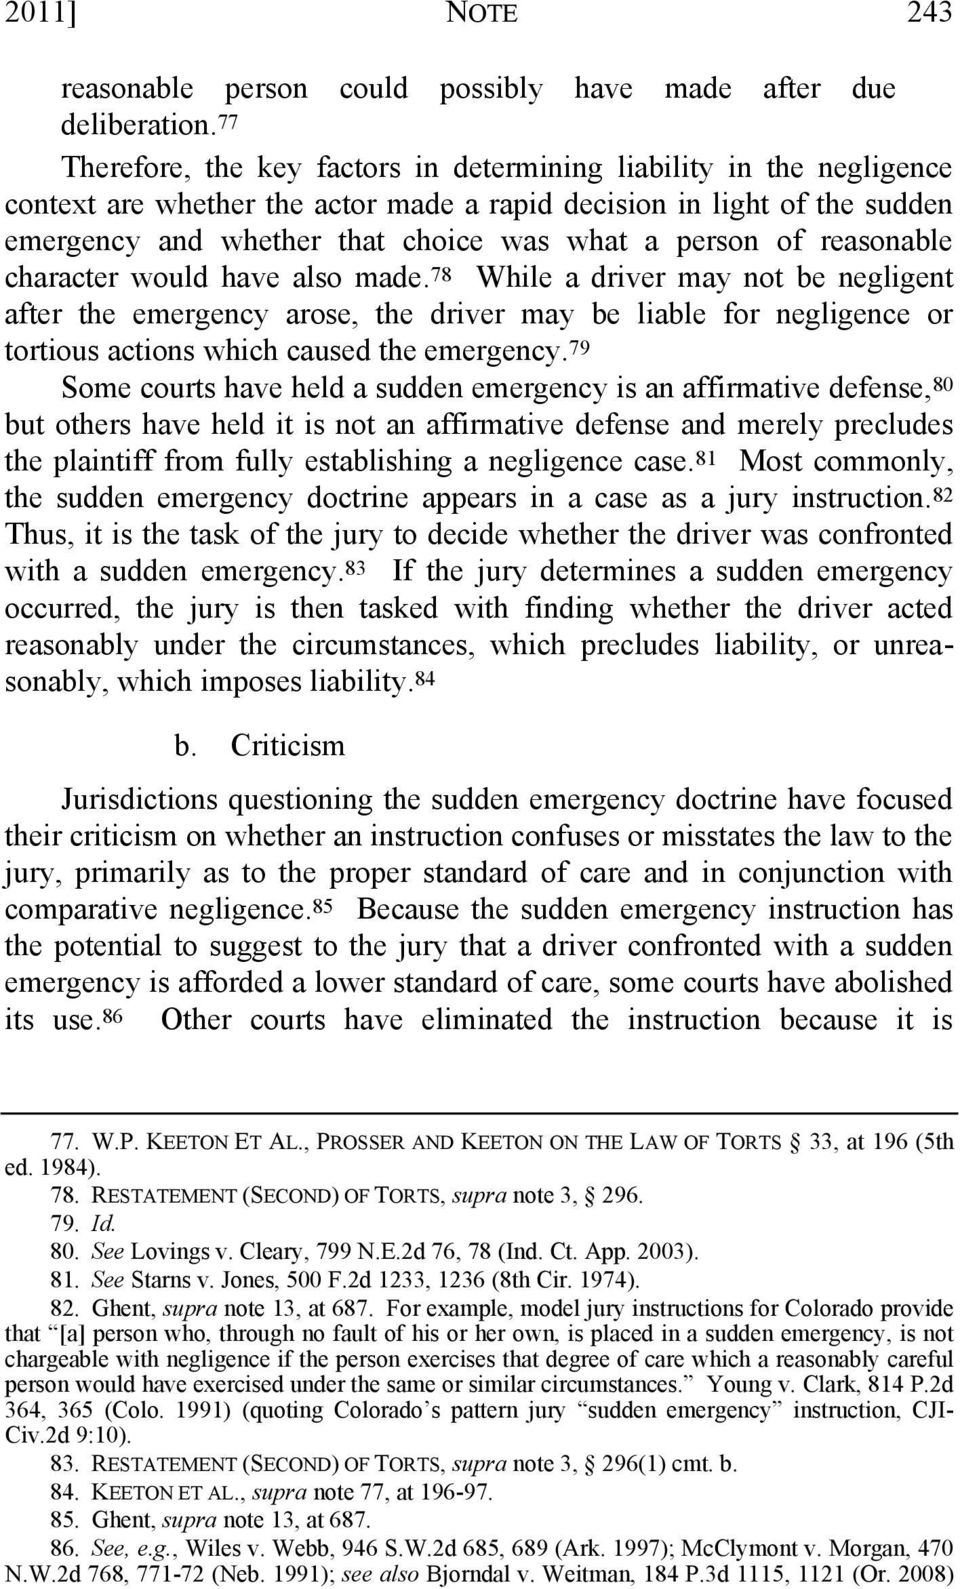 of reasonable character would have also made. 78 While a driver may not be negligent after the emergency arose, the driver may be liable for negligence or tortious actions which caused the emergency.